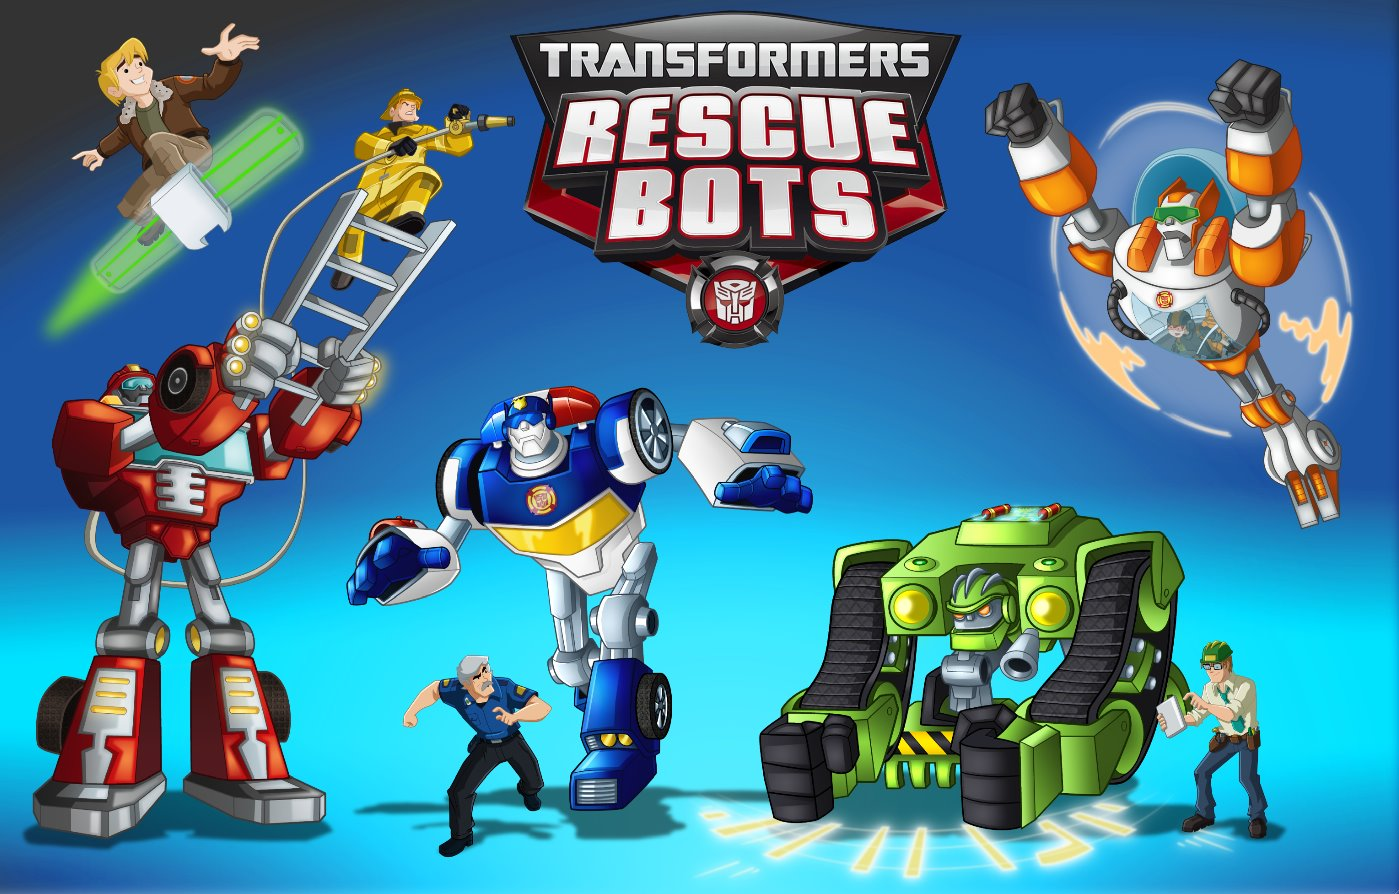 Transformers Rescue Bots: Energize DVD Available Now